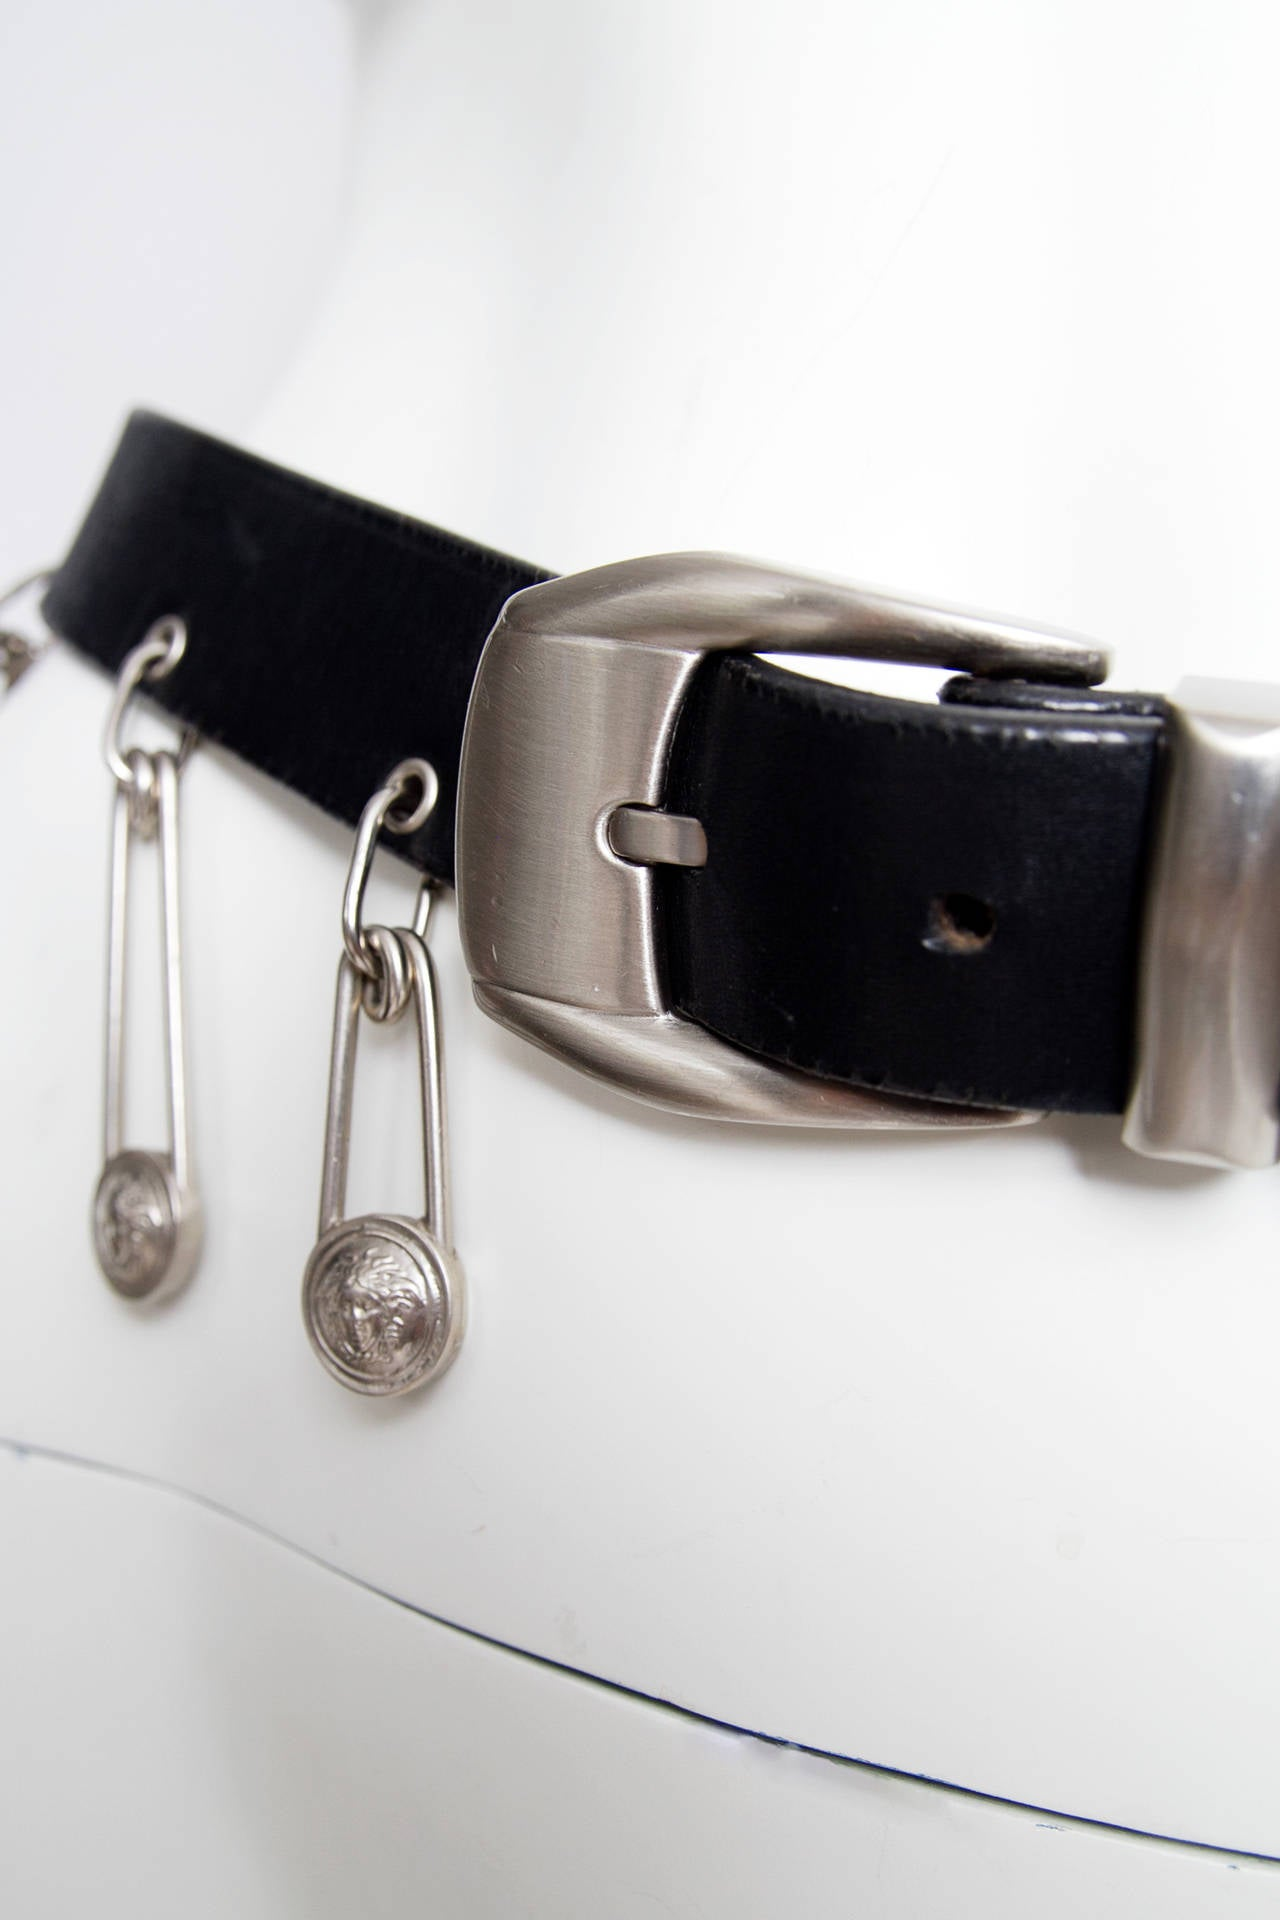 1990s Gianni Versace Black Leather Safety Pin Belt 8